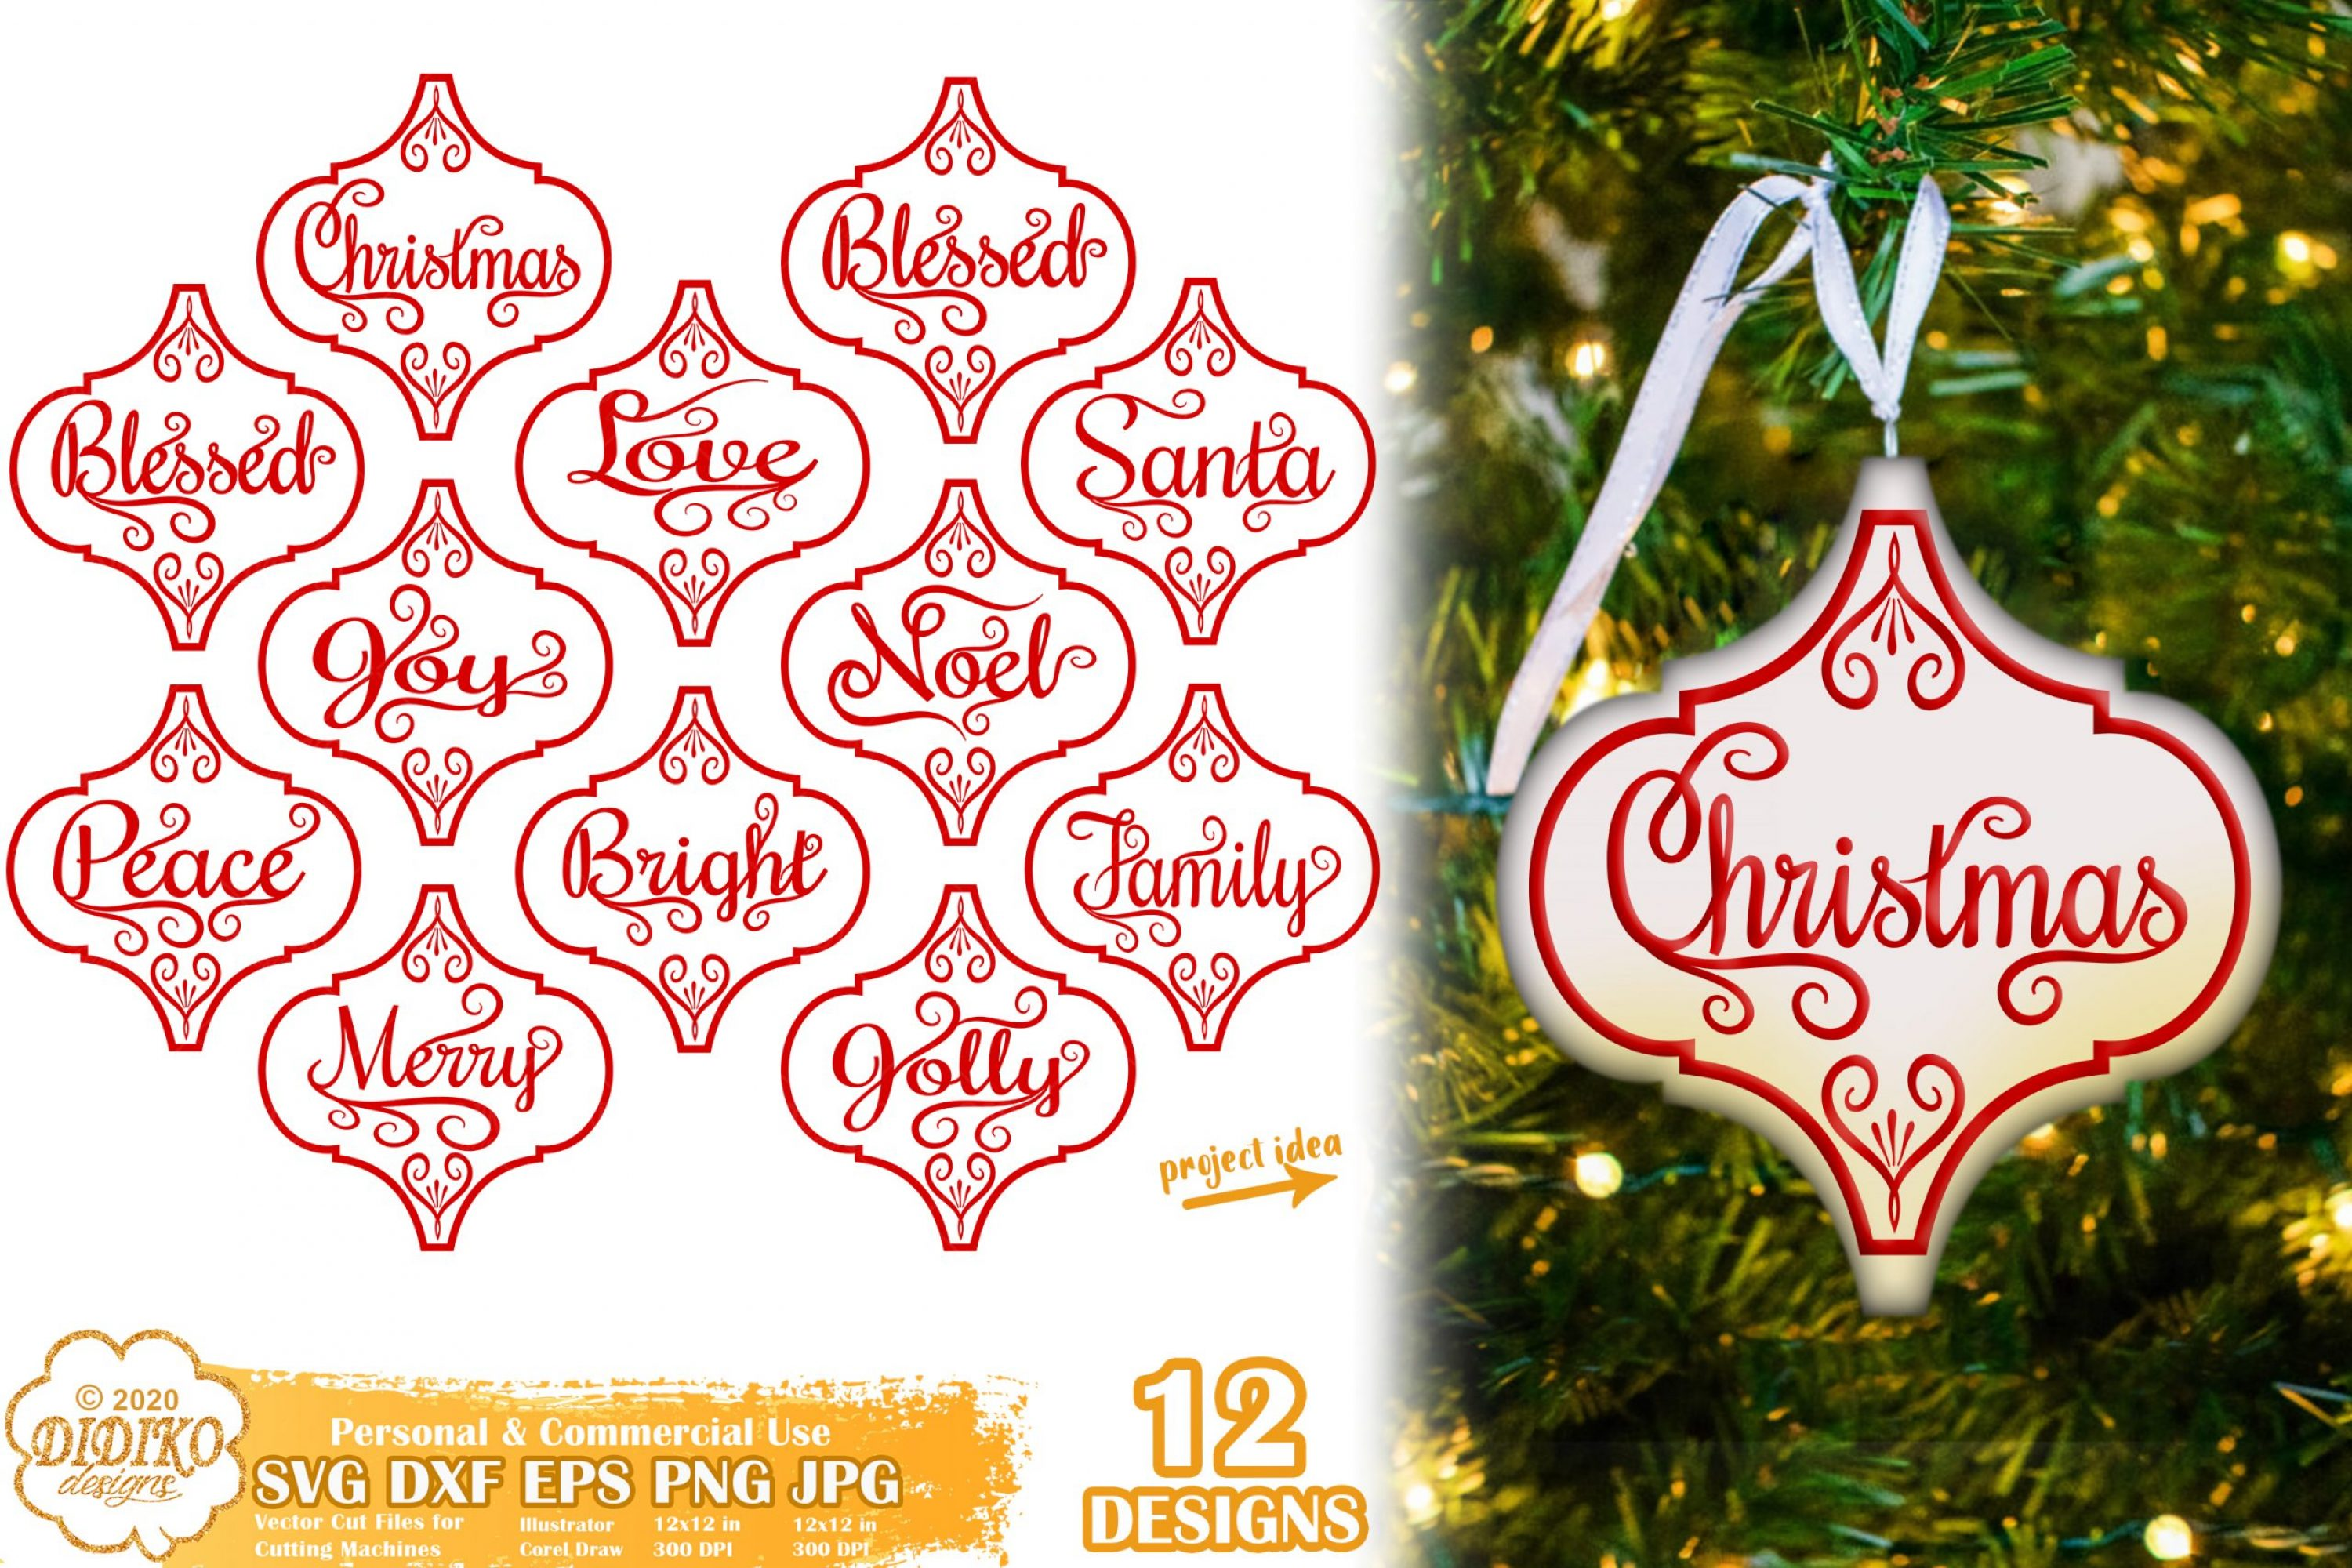 Arabesque Tile Ornament SVG #1, Christmas bundle svg